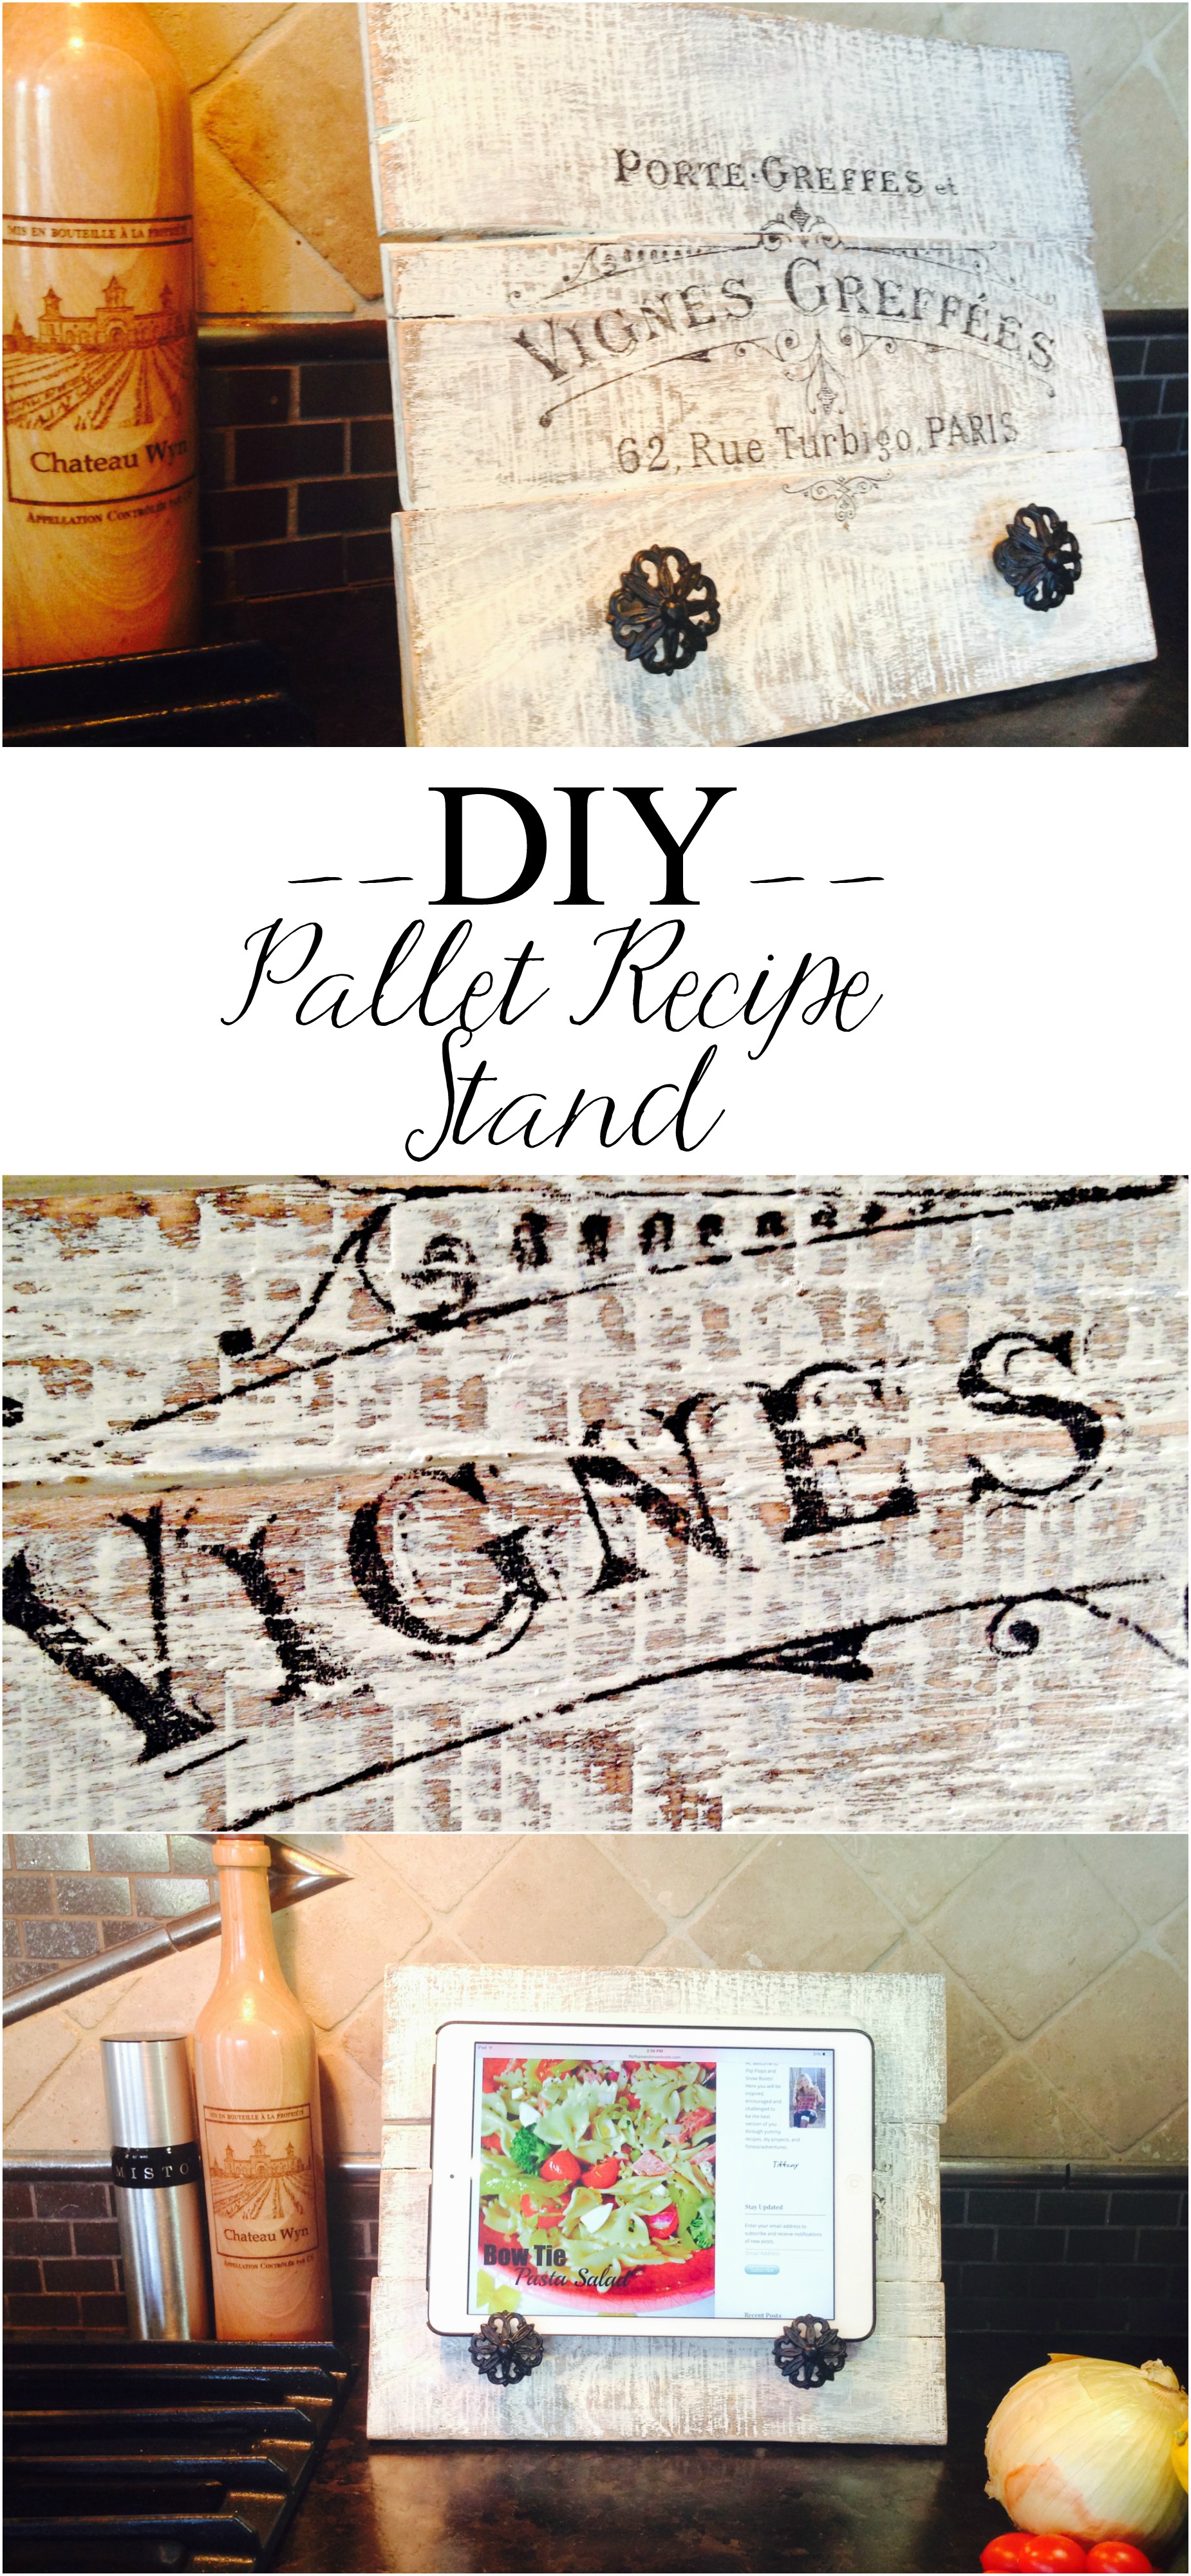 Make your own Pallet Recipe Stand and use stylish drawer knobs to rest a cookbook or tablet. Personalize it using the parchment paper graphic transfer method. Having a recipe stand is a great way to keep track of your recipe while cooking amongst the chaos in the kitchen.